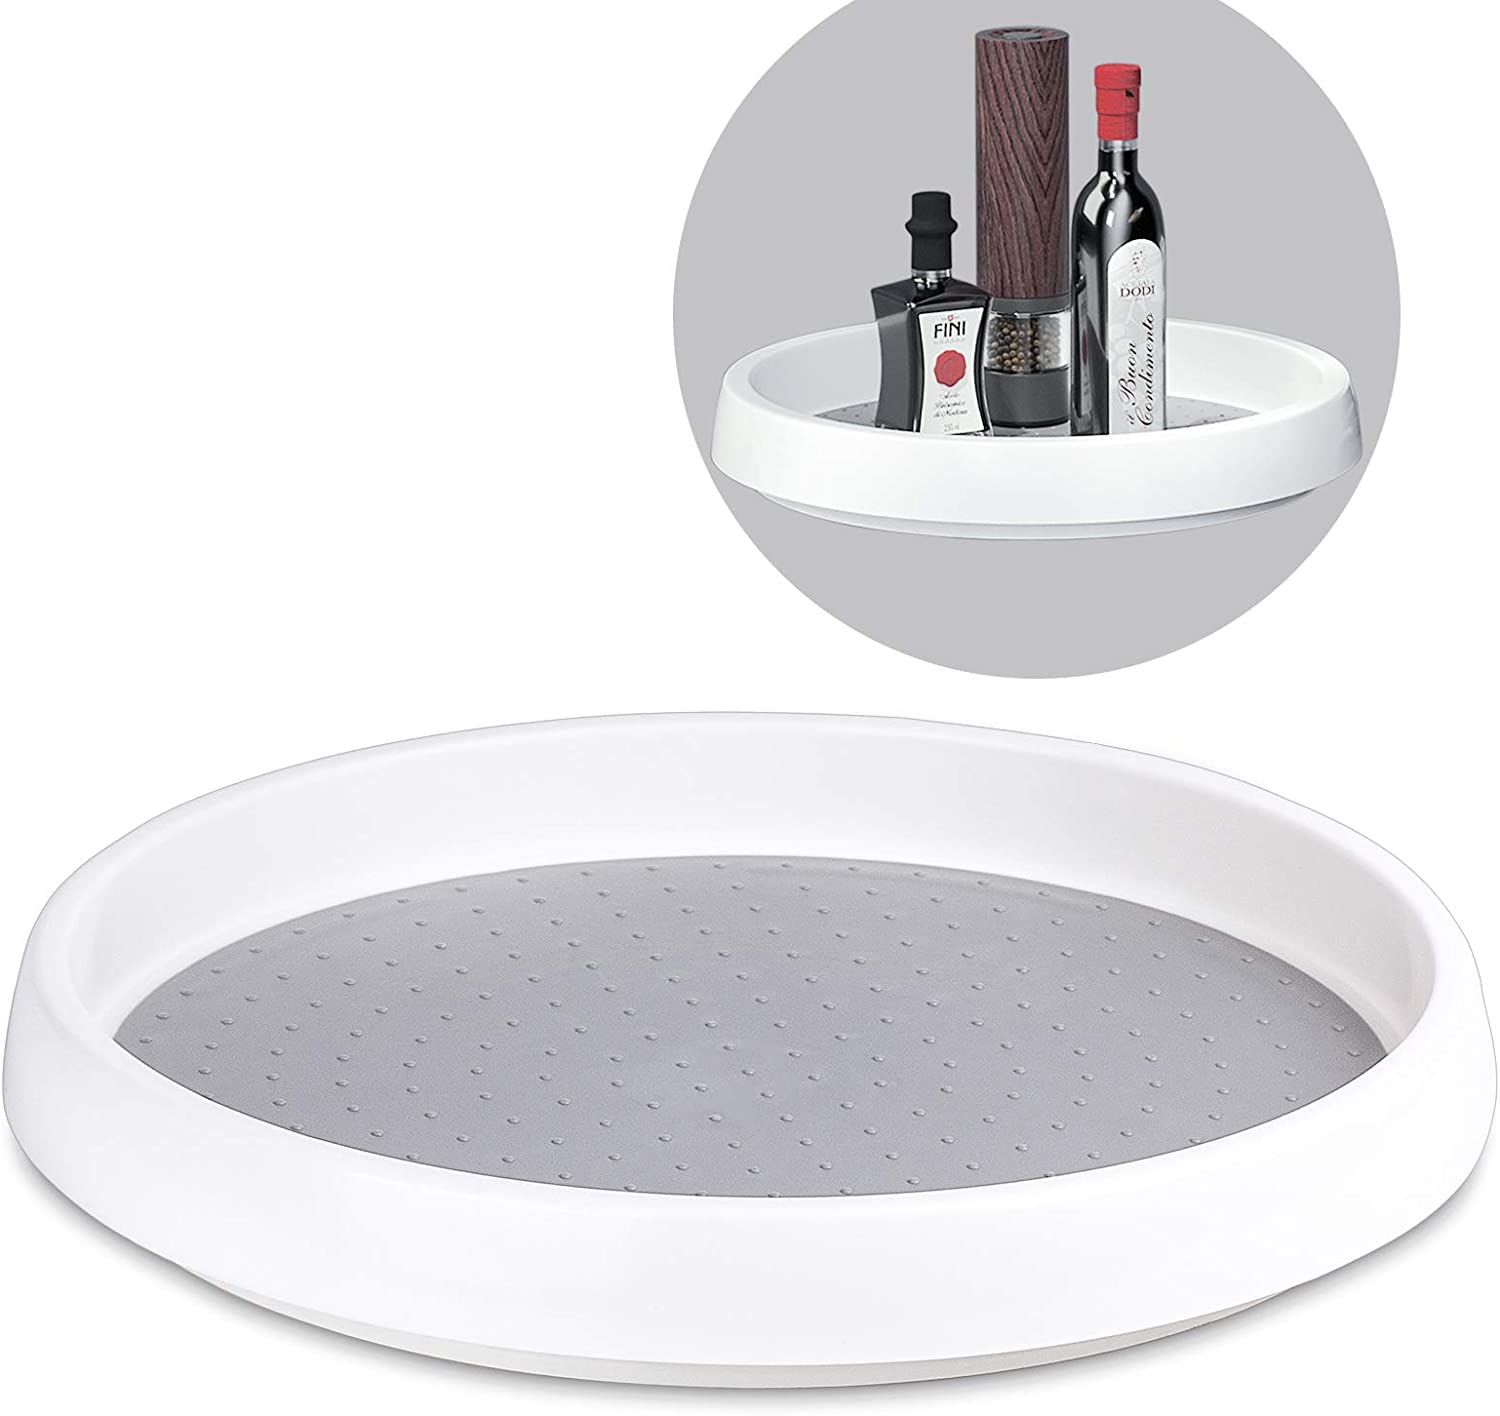 Lazy Susan, McoMce Lazy Susan Turntable, Glides Easily Lazy Susan Cabinet Organizer for Kitchen Pantry, Cabinet, Countertops, 360-Degree Turntable, 9-Inch Revolving Food Server, Gray